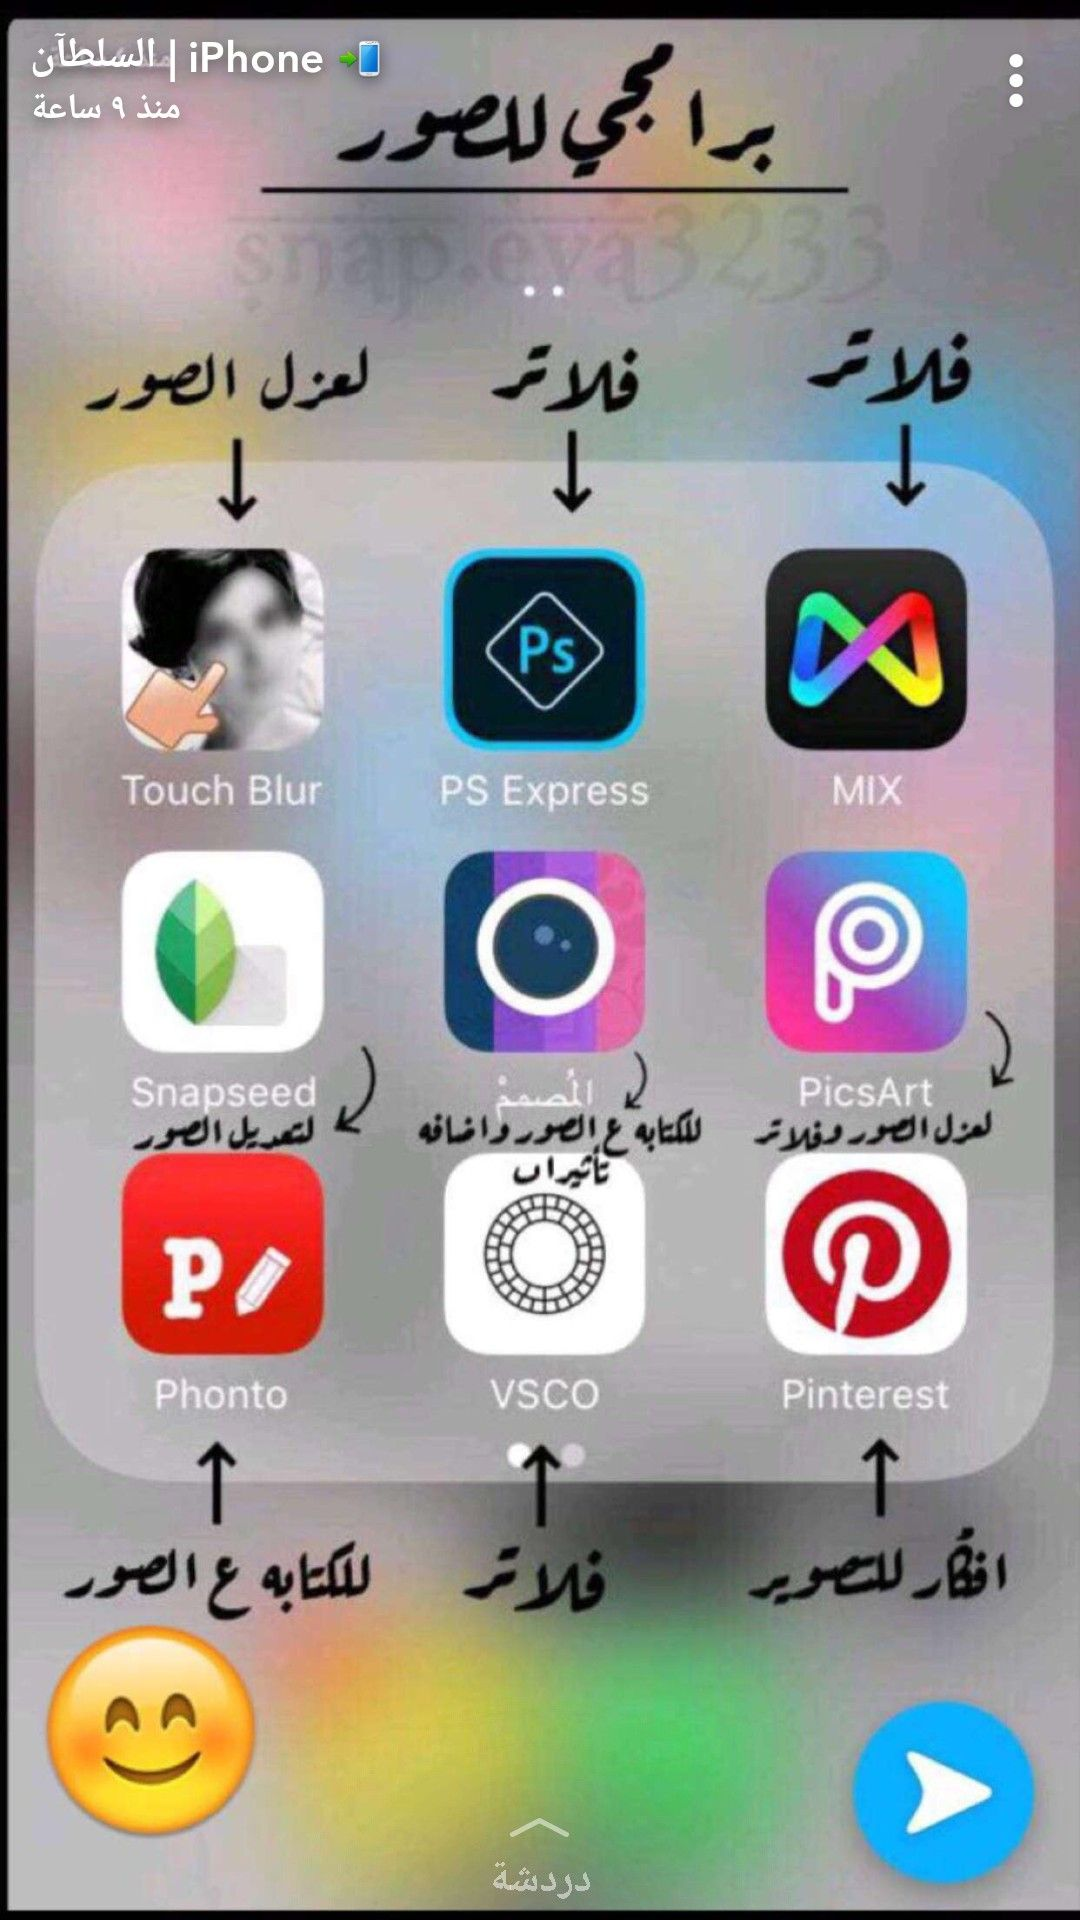 Pin By وهم On برامج مفيدة Iphone Photo Editor App Application Iphone Picture Editing Apps